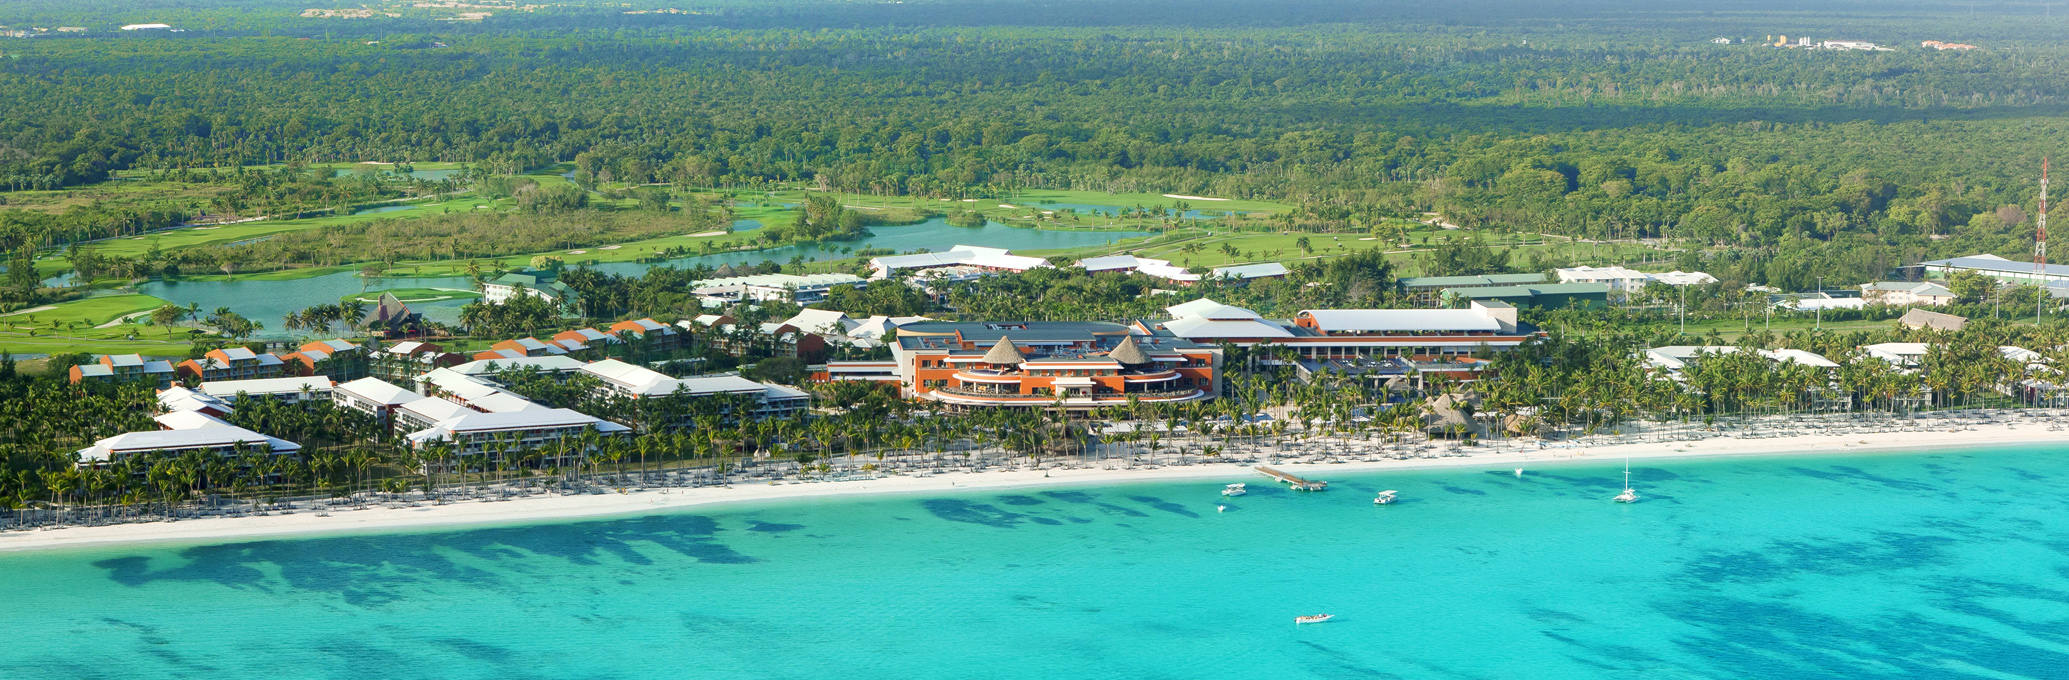 Best Dominican Republic Hotels: Barcelo Bavaro Grand Resort